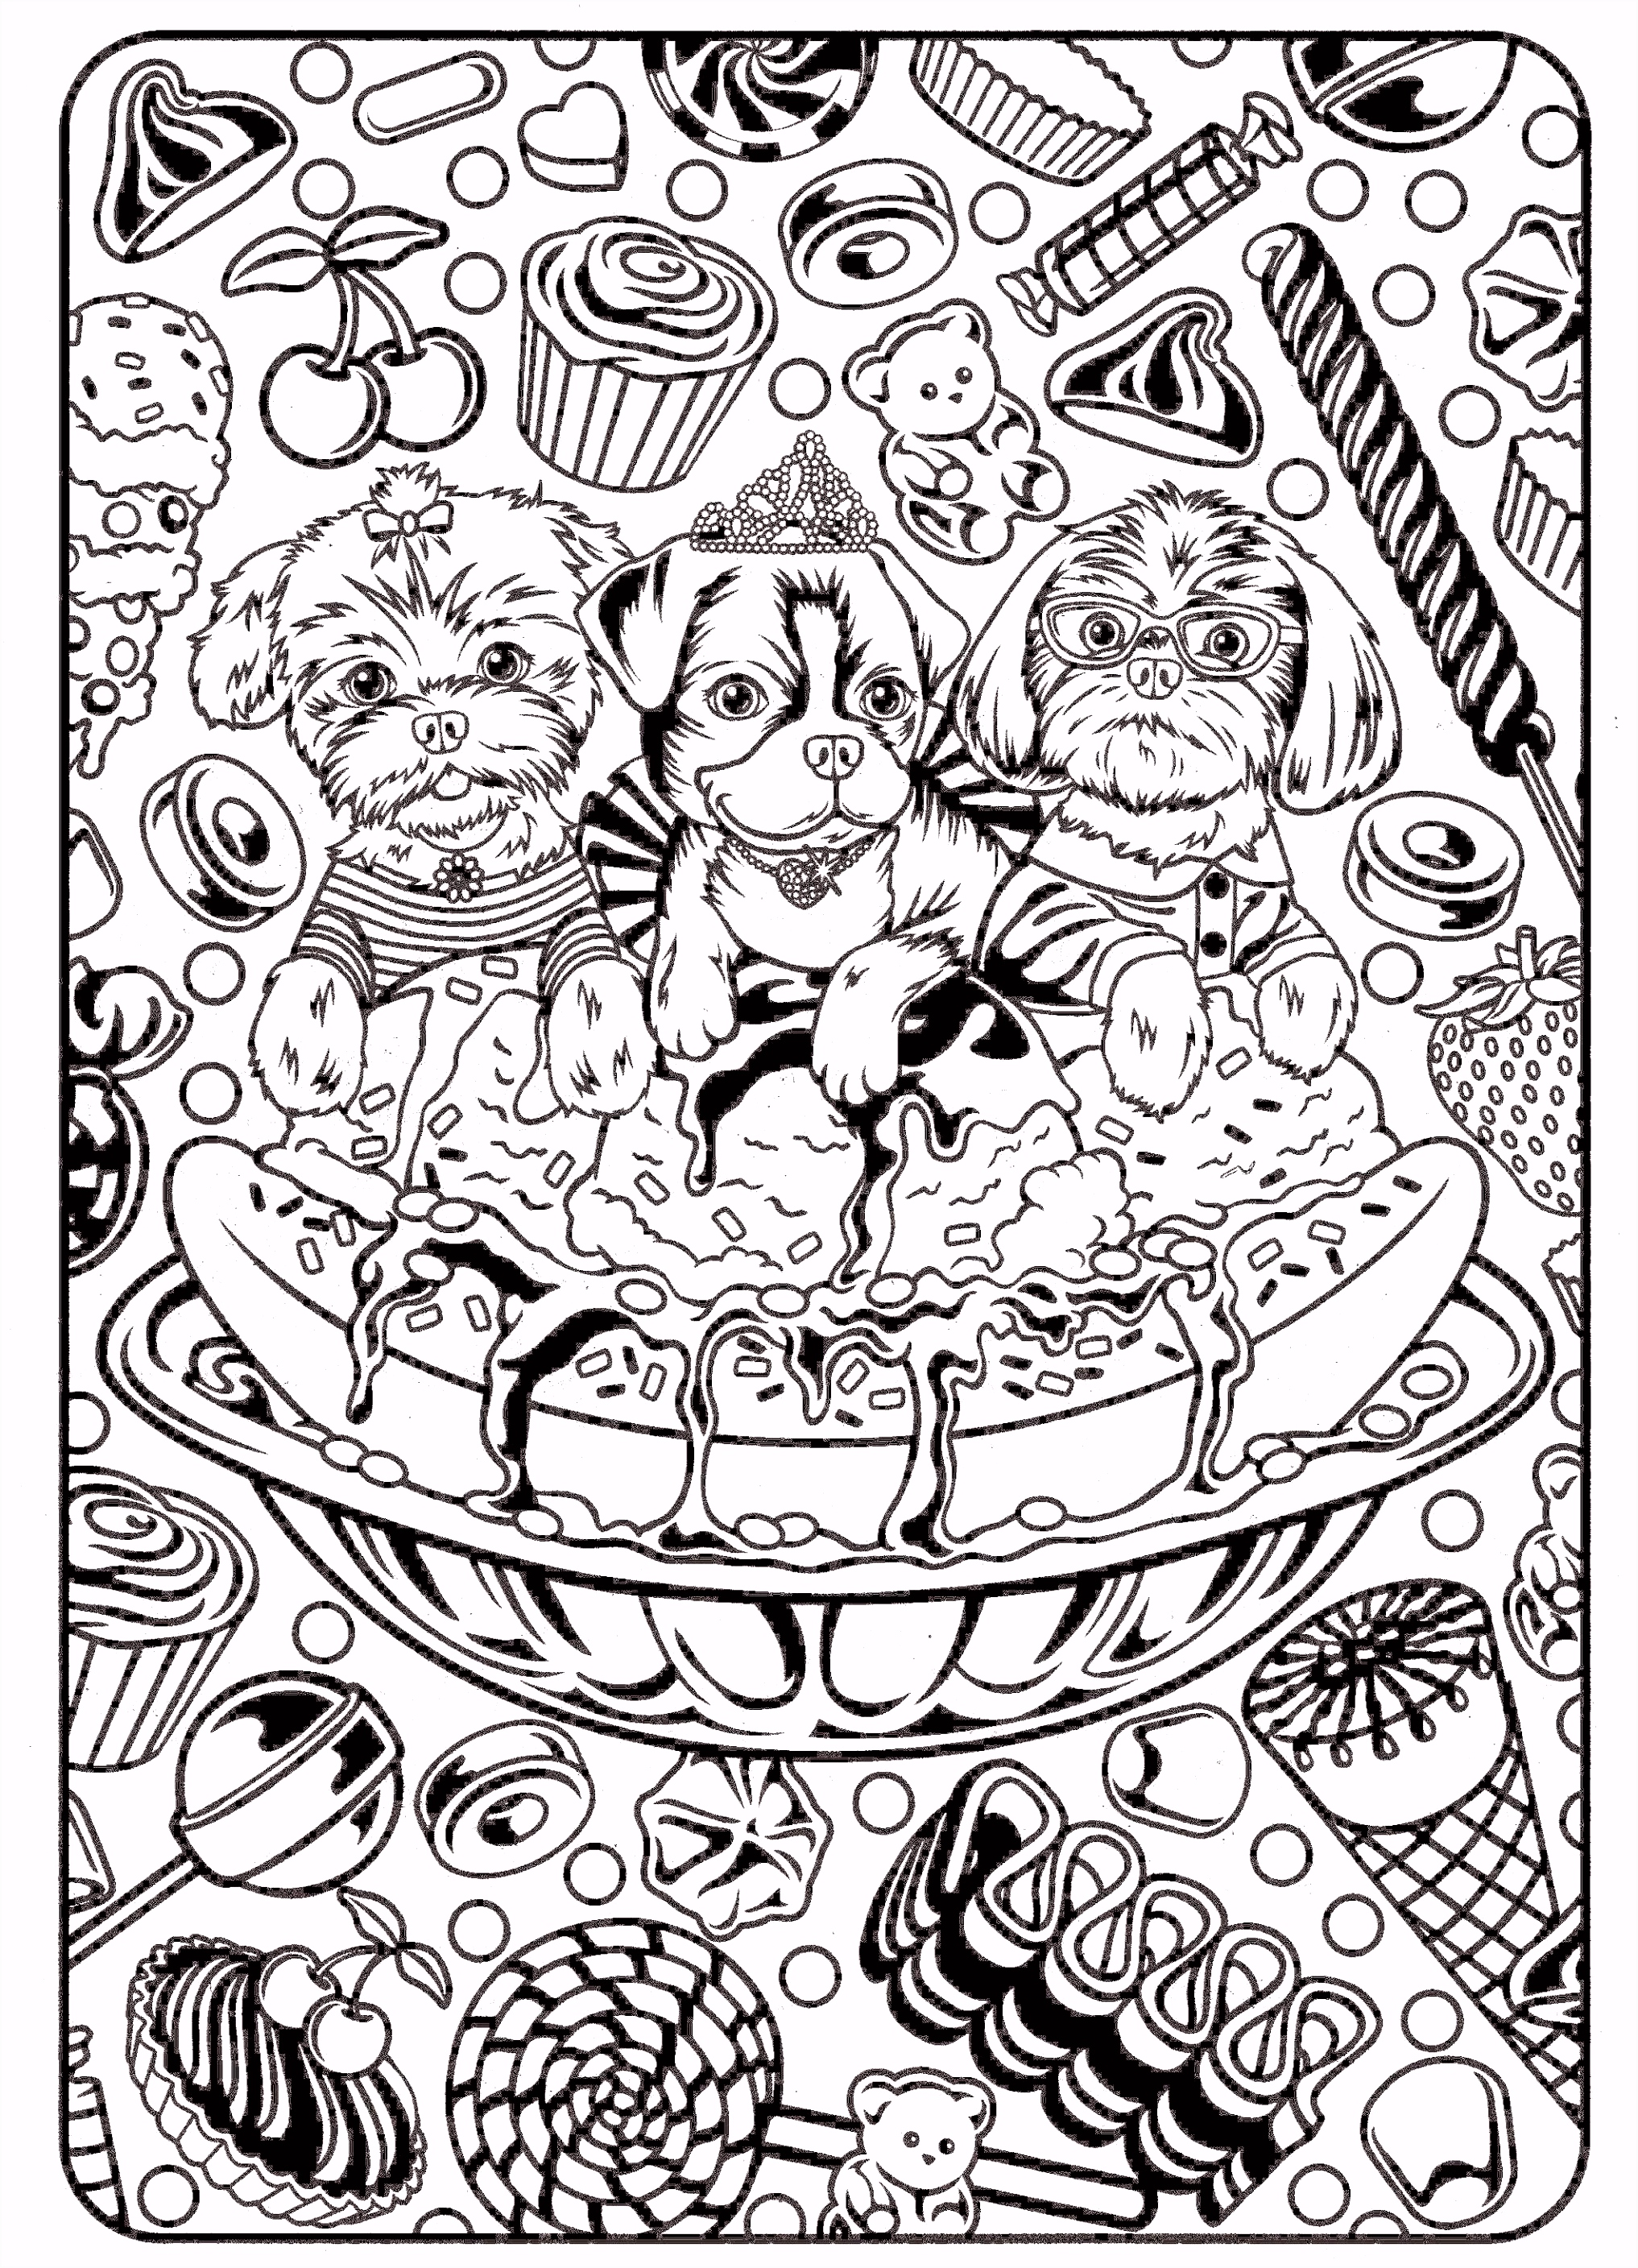 Wiki Design Wiki design is home of coloriage Page 118